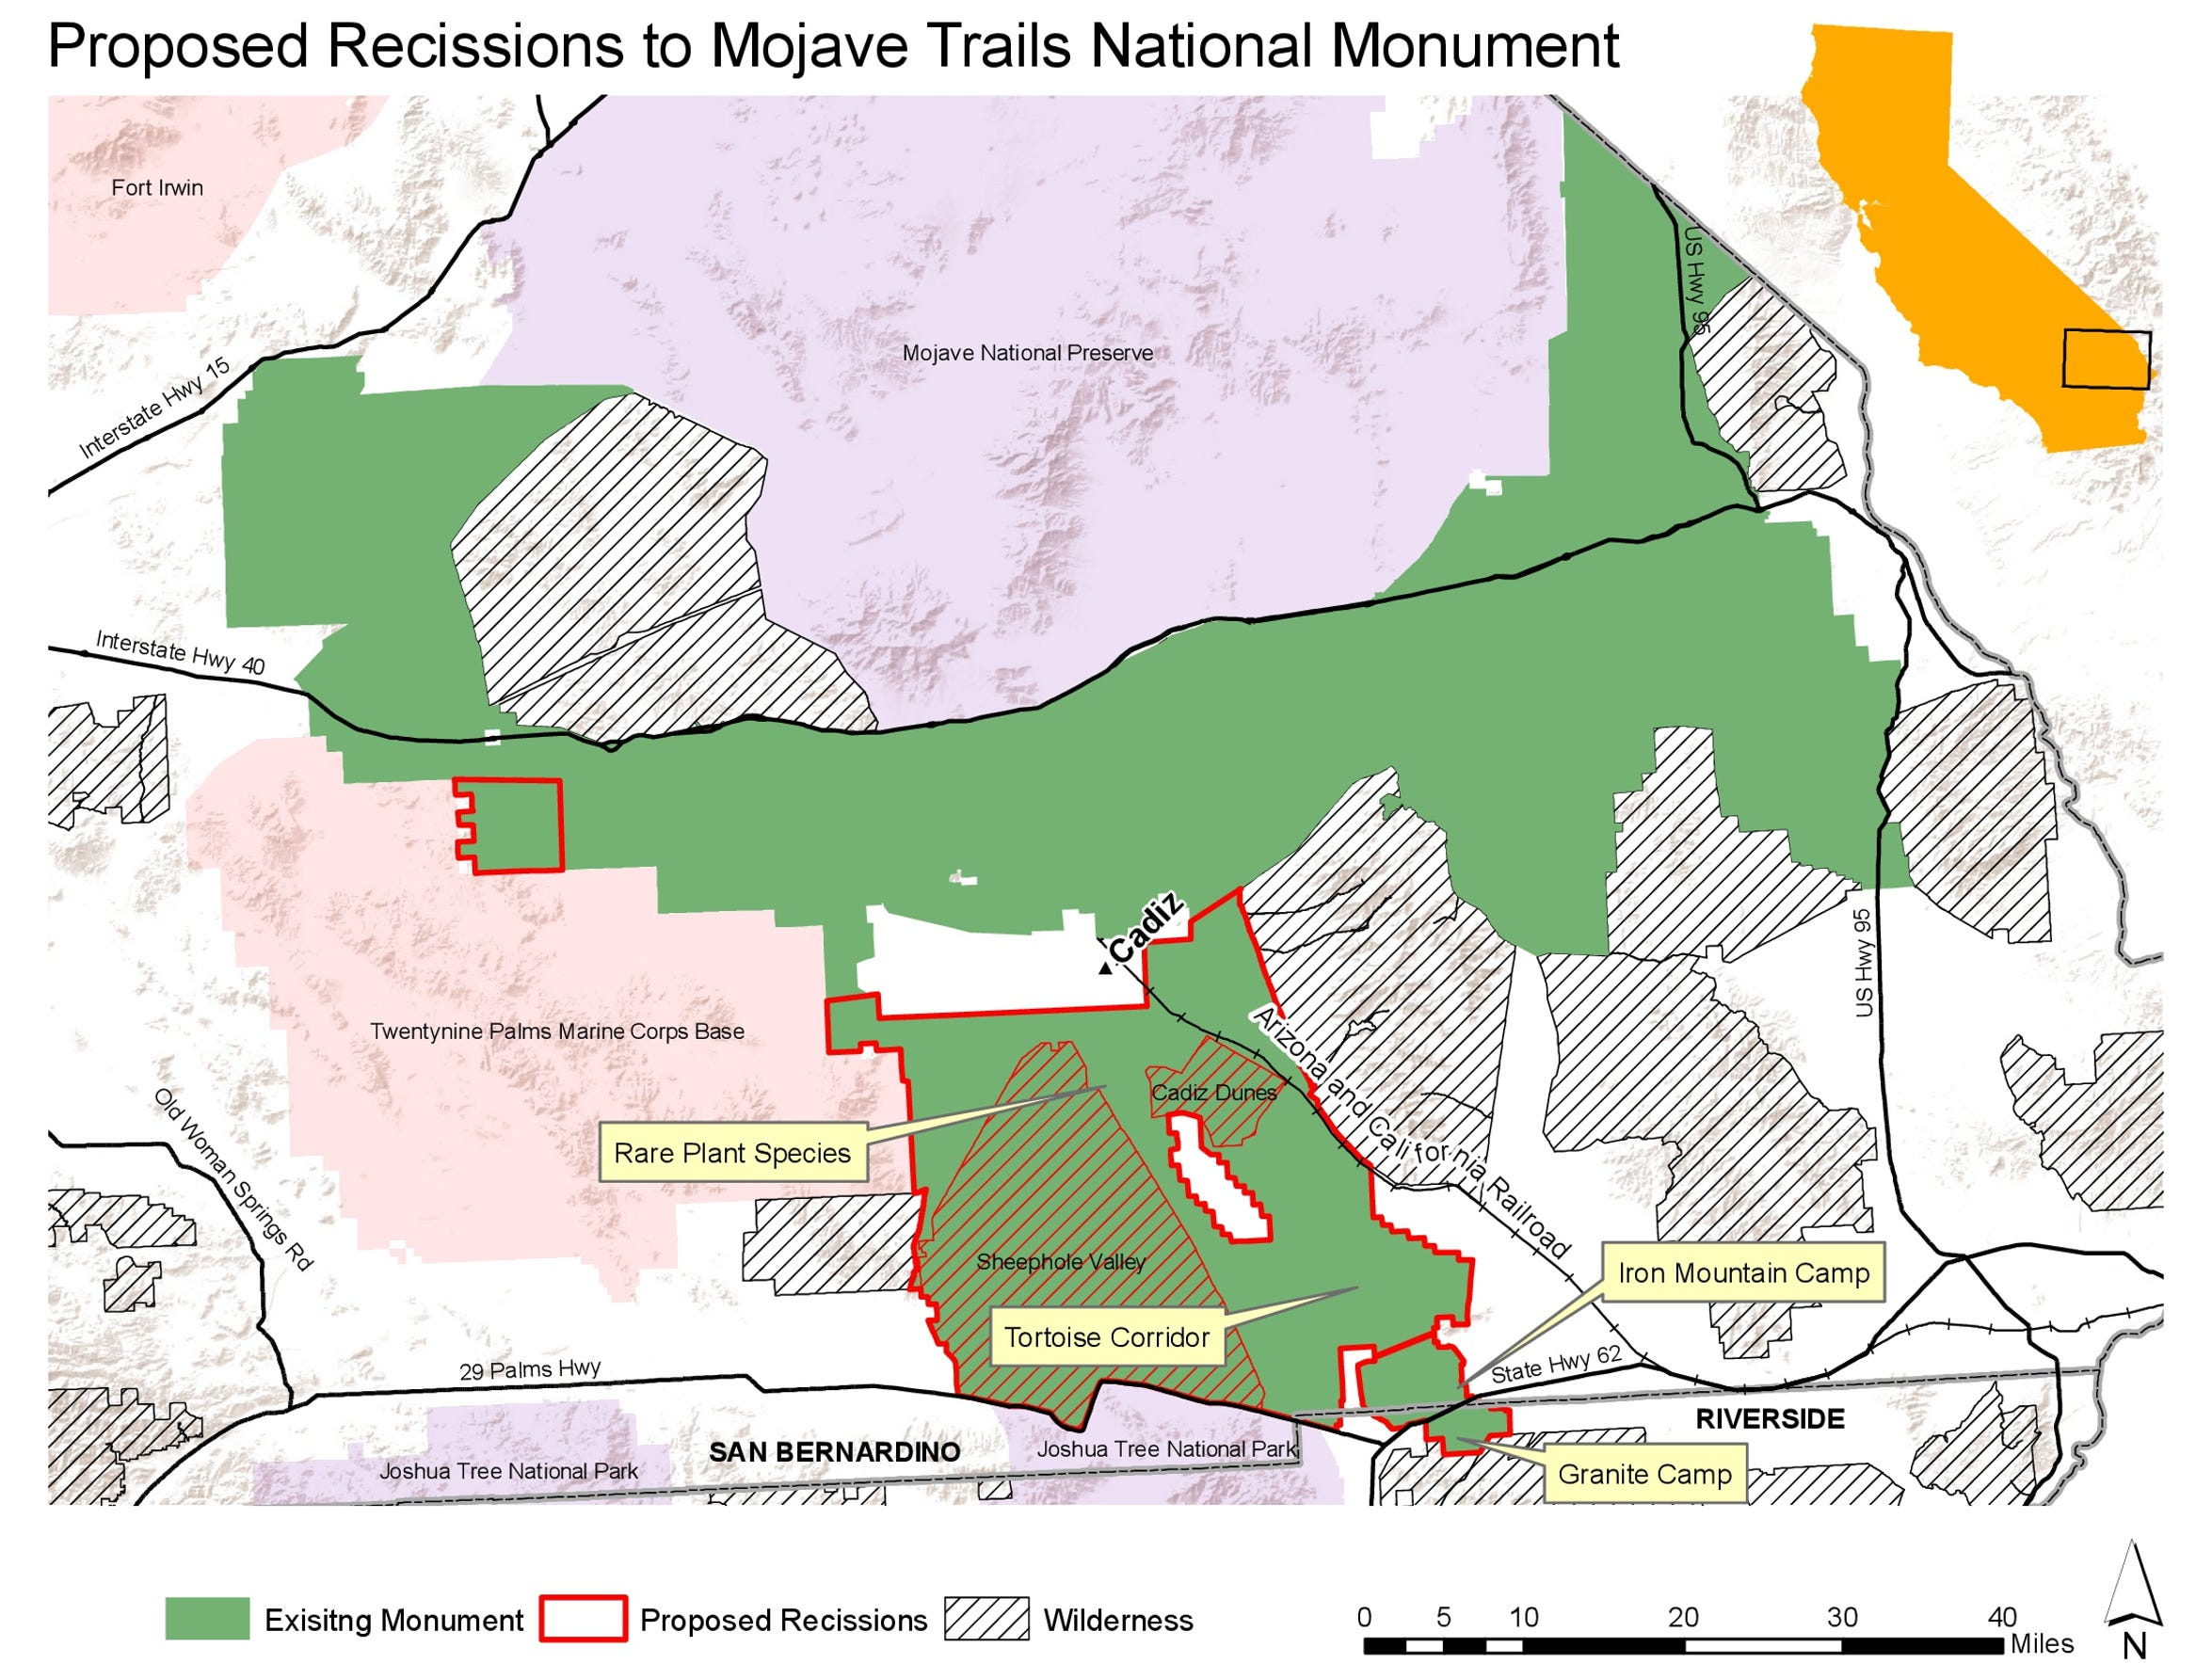 This map, which was produced by the Mojave Desert Land